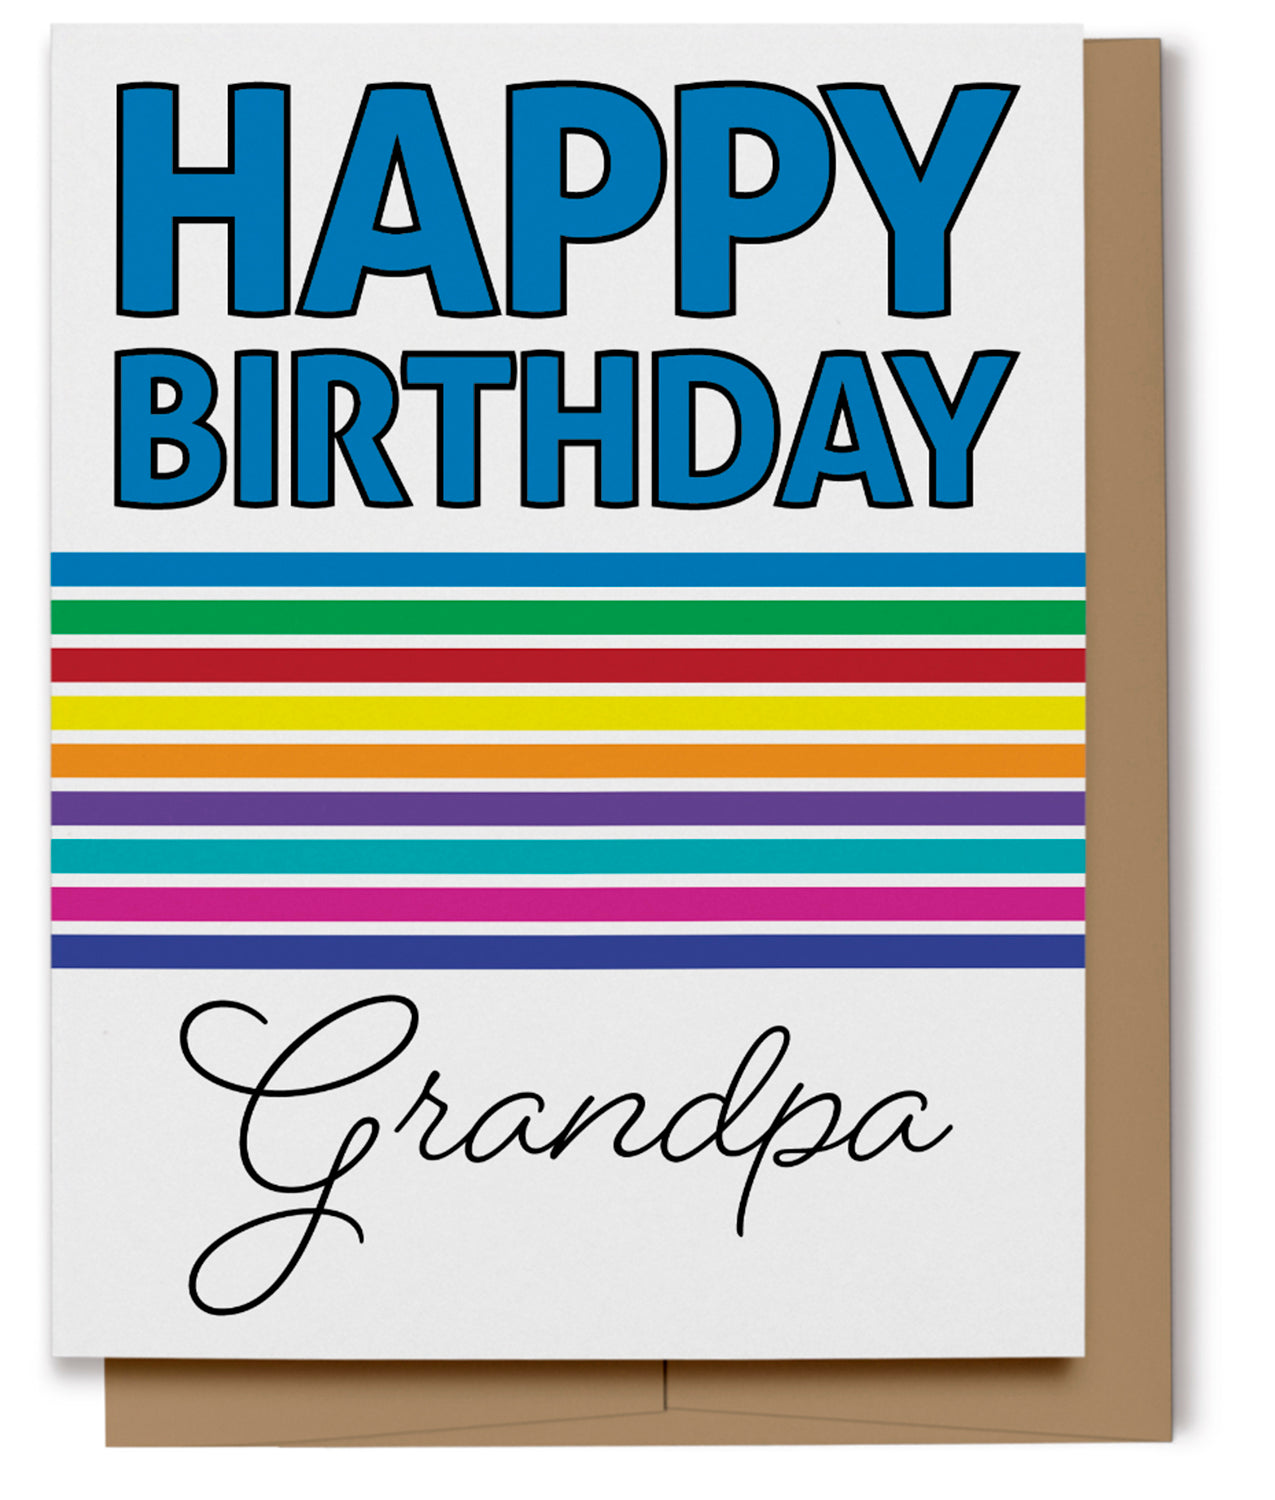 Bold Rainbow Happy Birthday Card for Grandpa (100% Recycled)